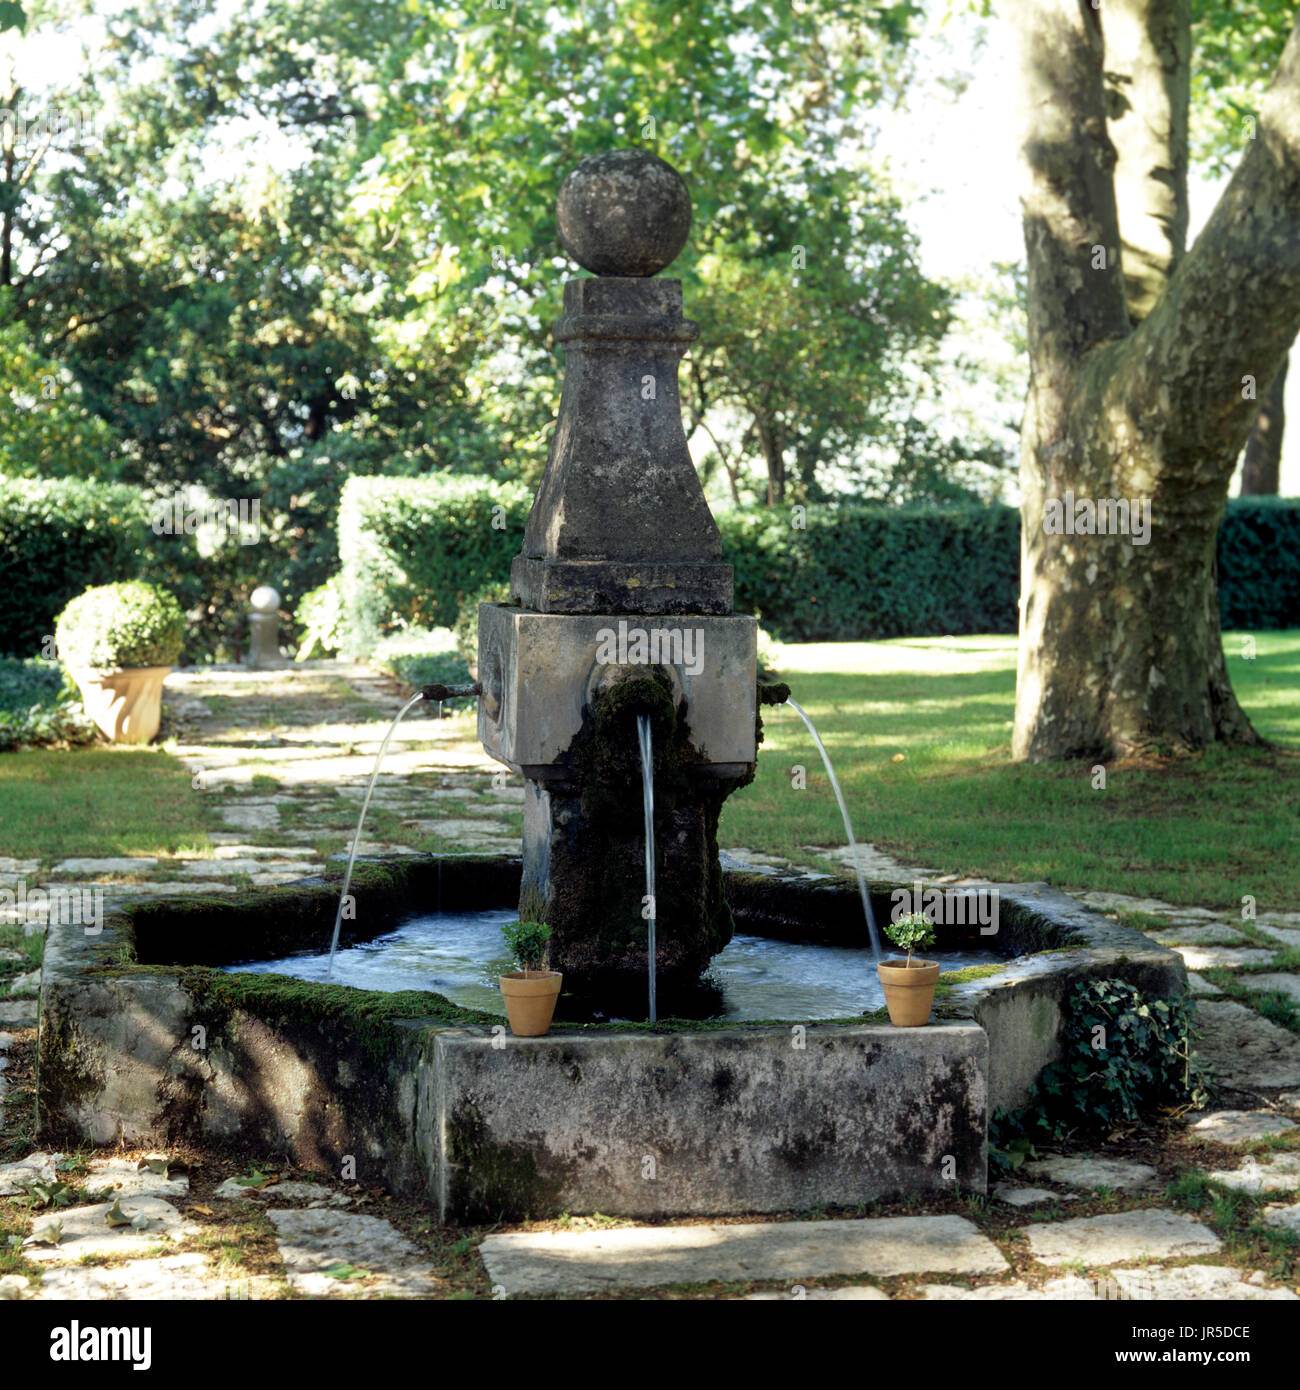 Water fountain in a back garden - Stock Image